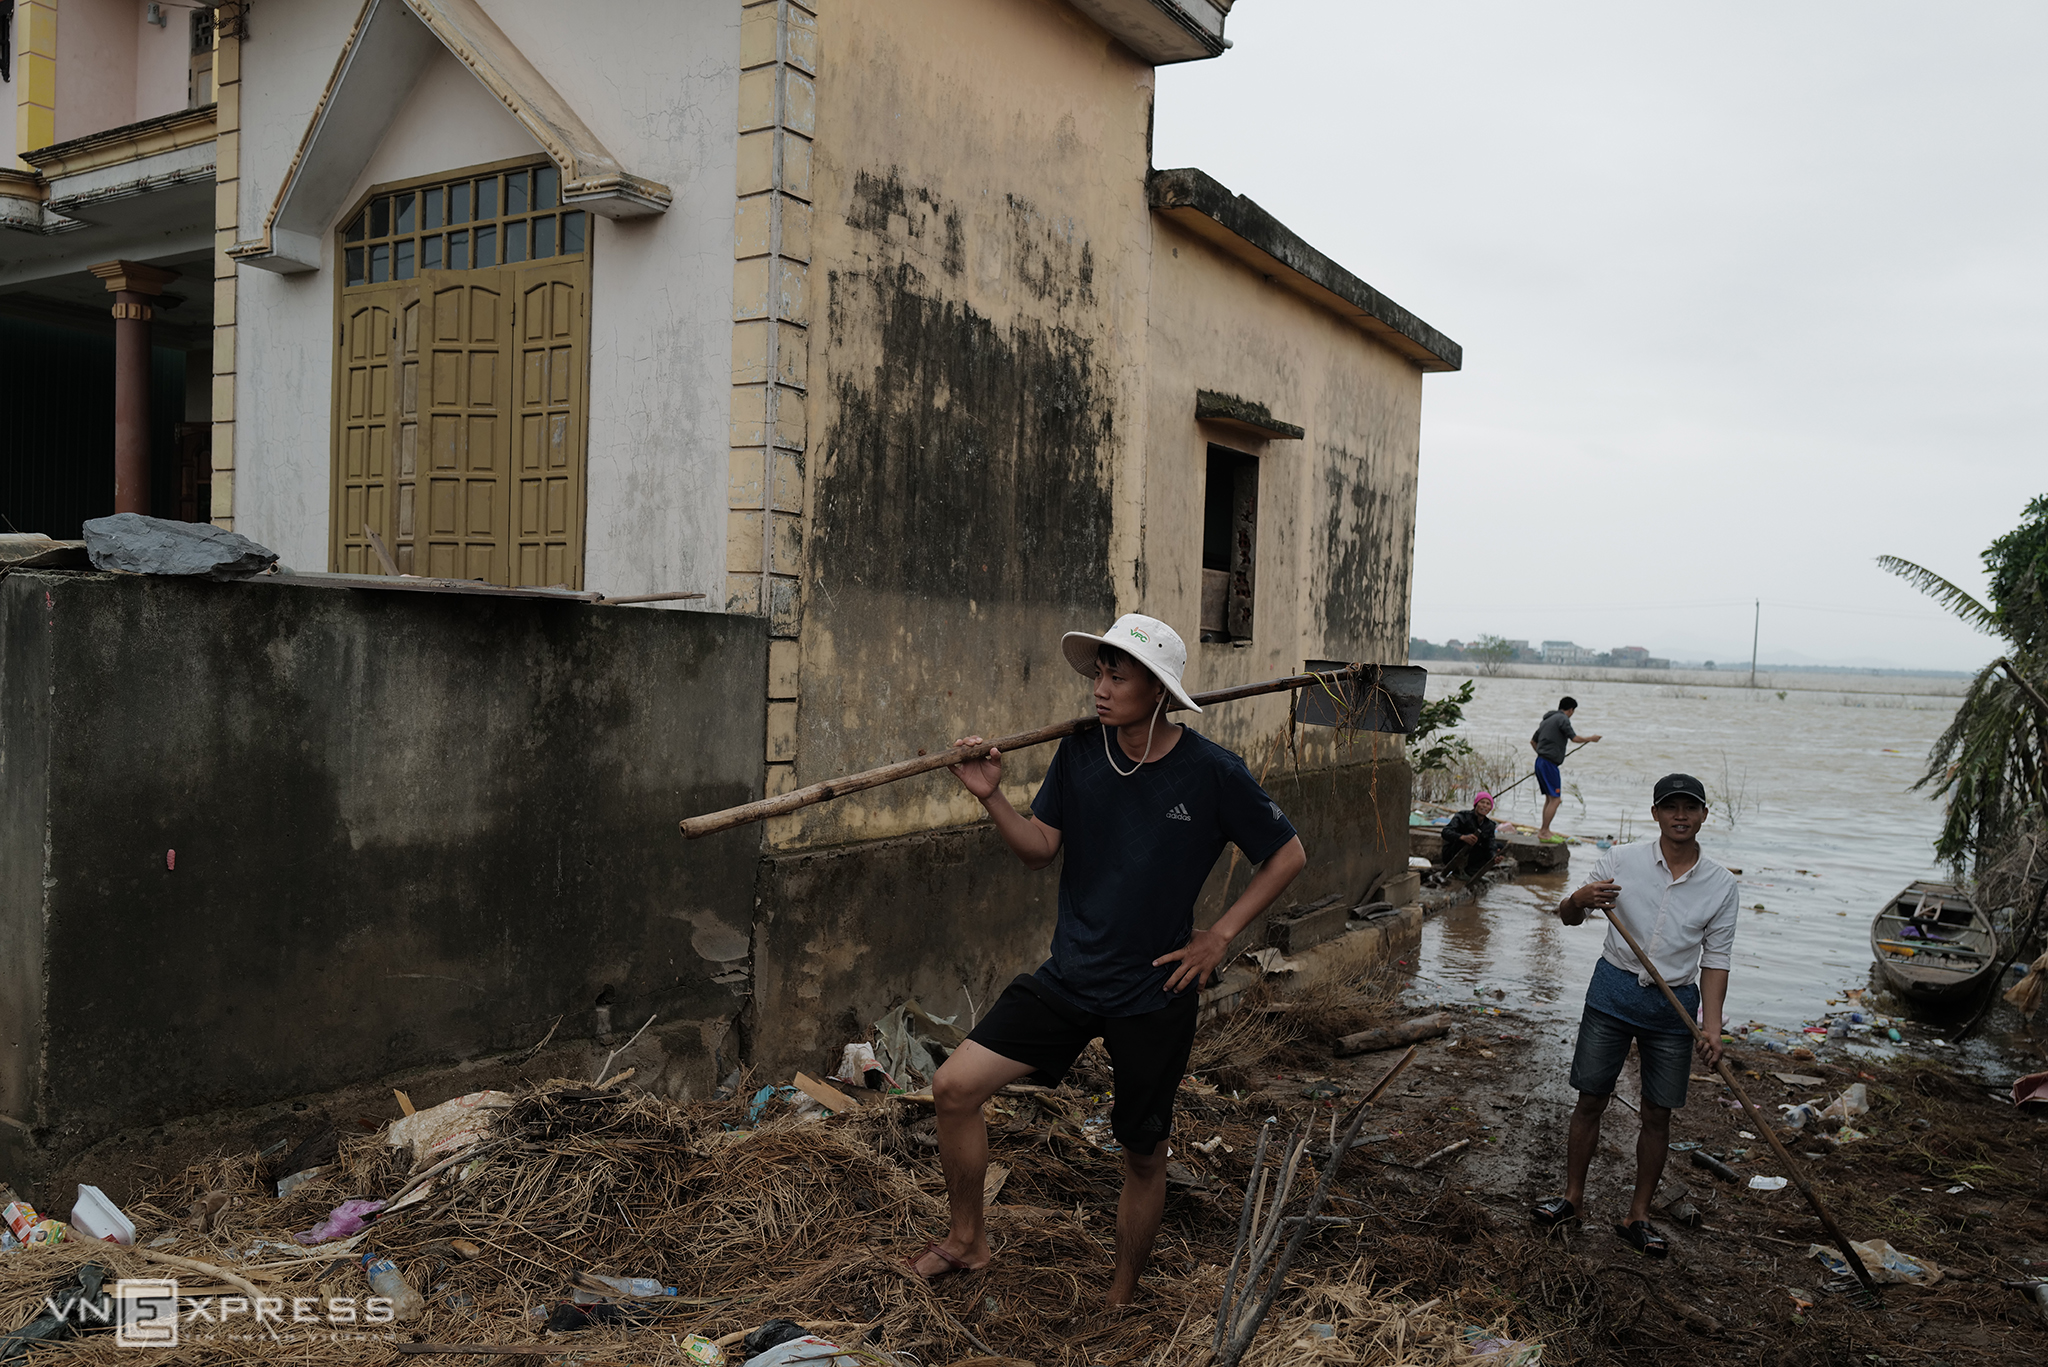 Quang Binh left desolate in wake of receding floods